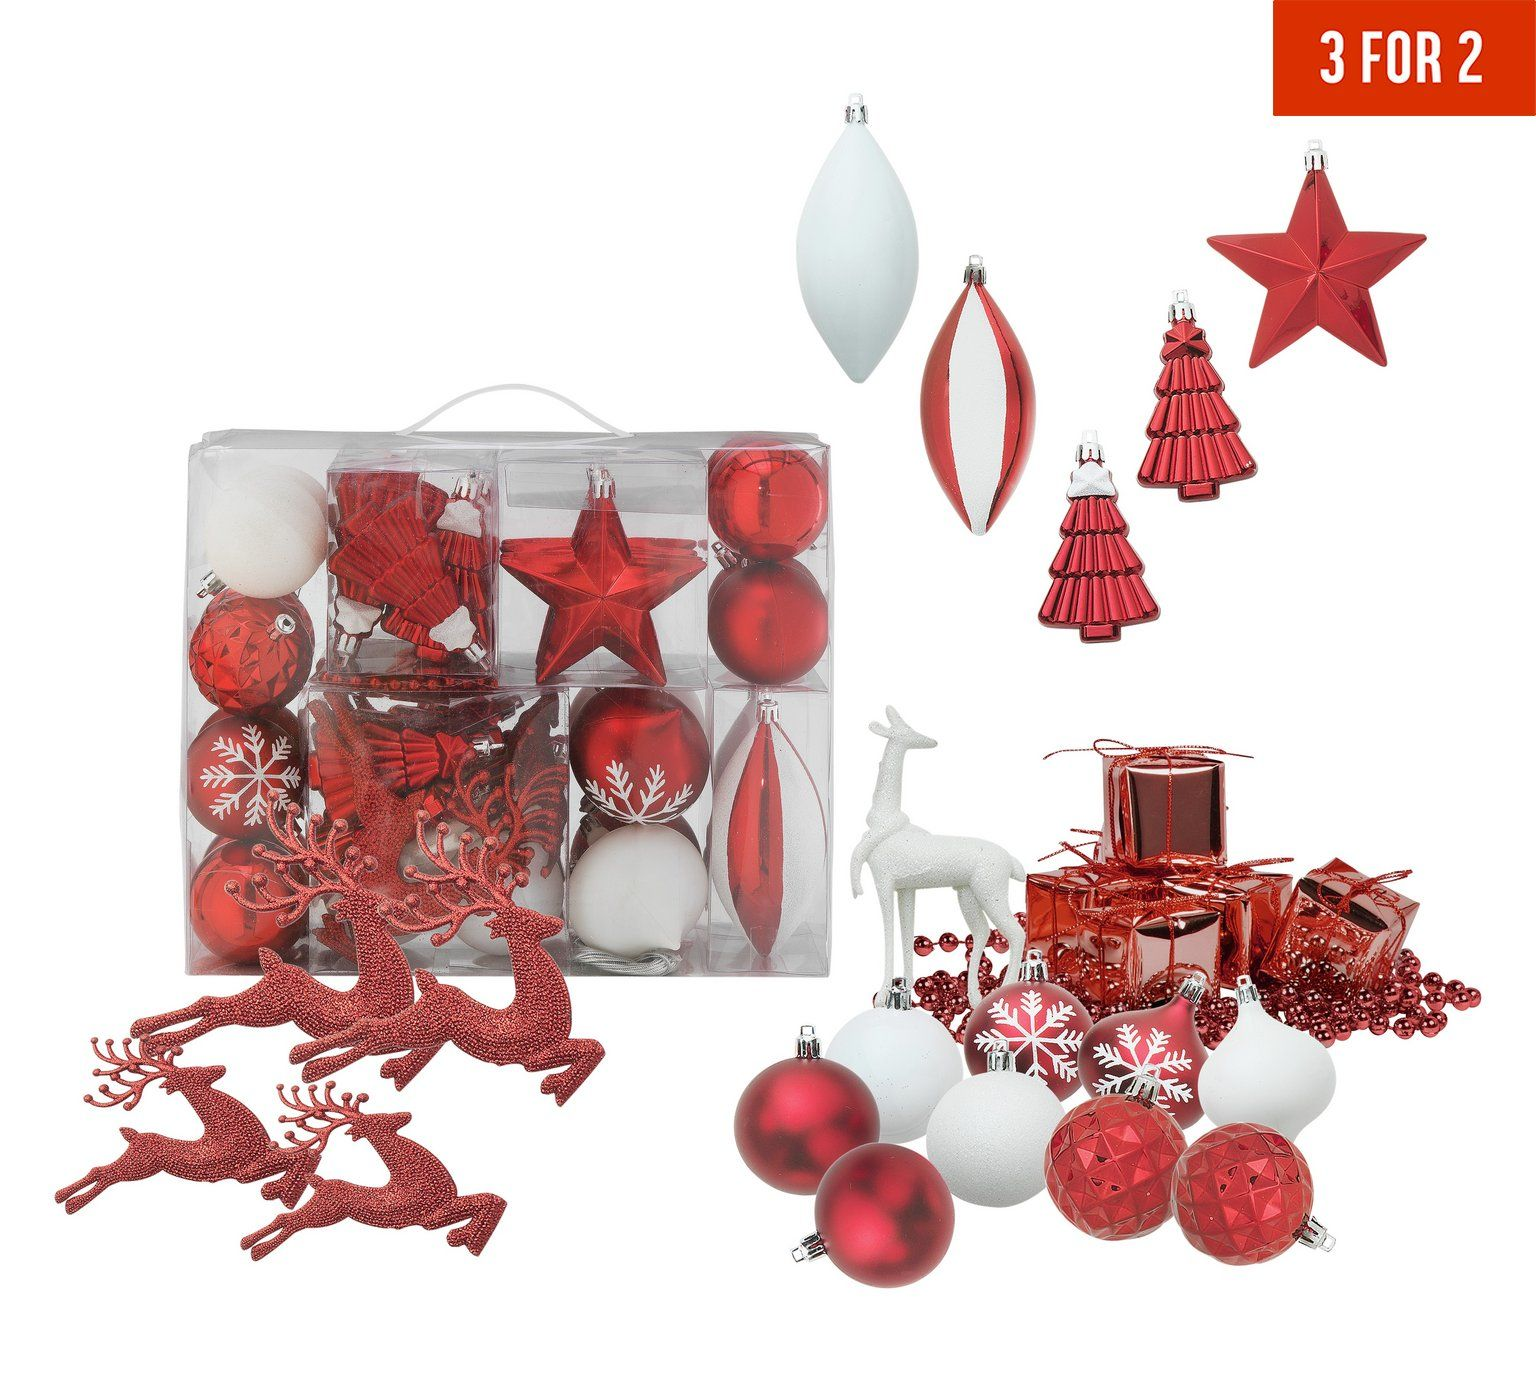 Argos Christmas Light Decorations: Argos Christmas Decorations Baubles